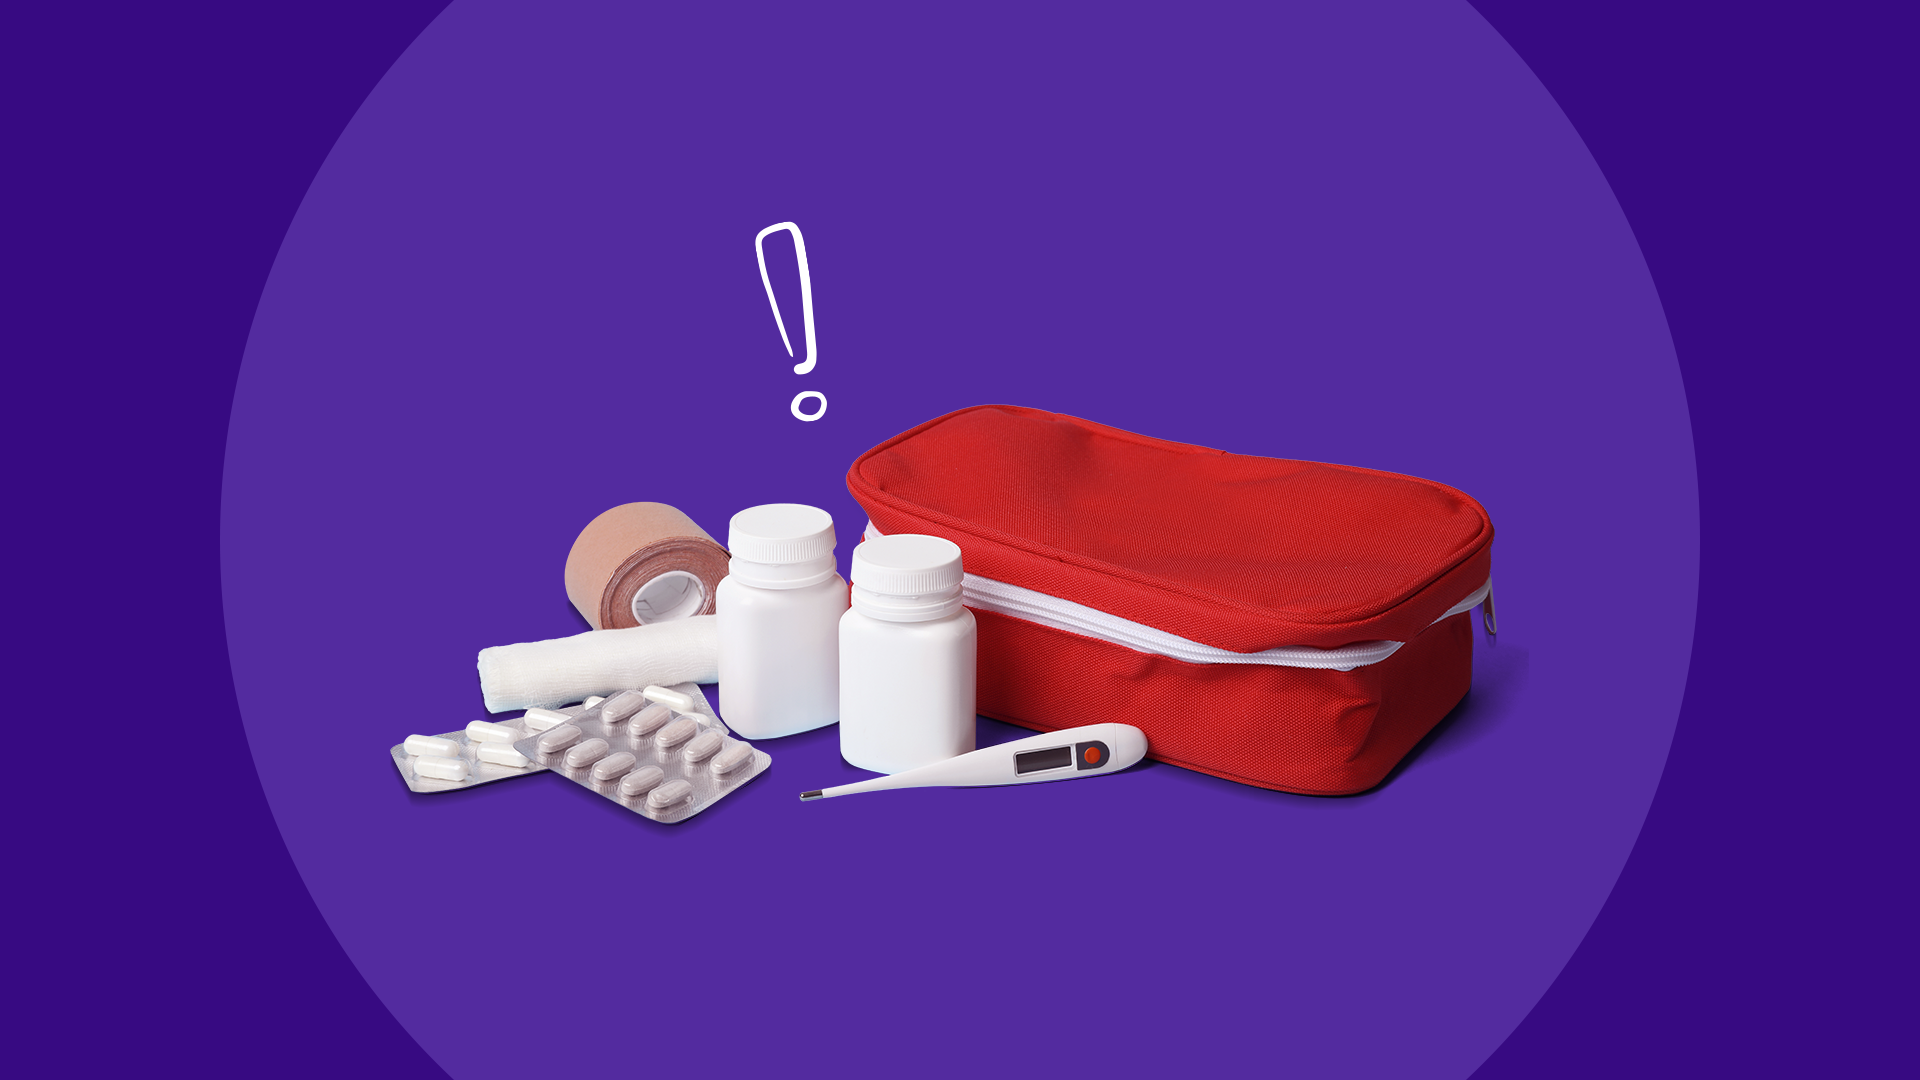 Medication disaster plan: Building and storing a first aid kit